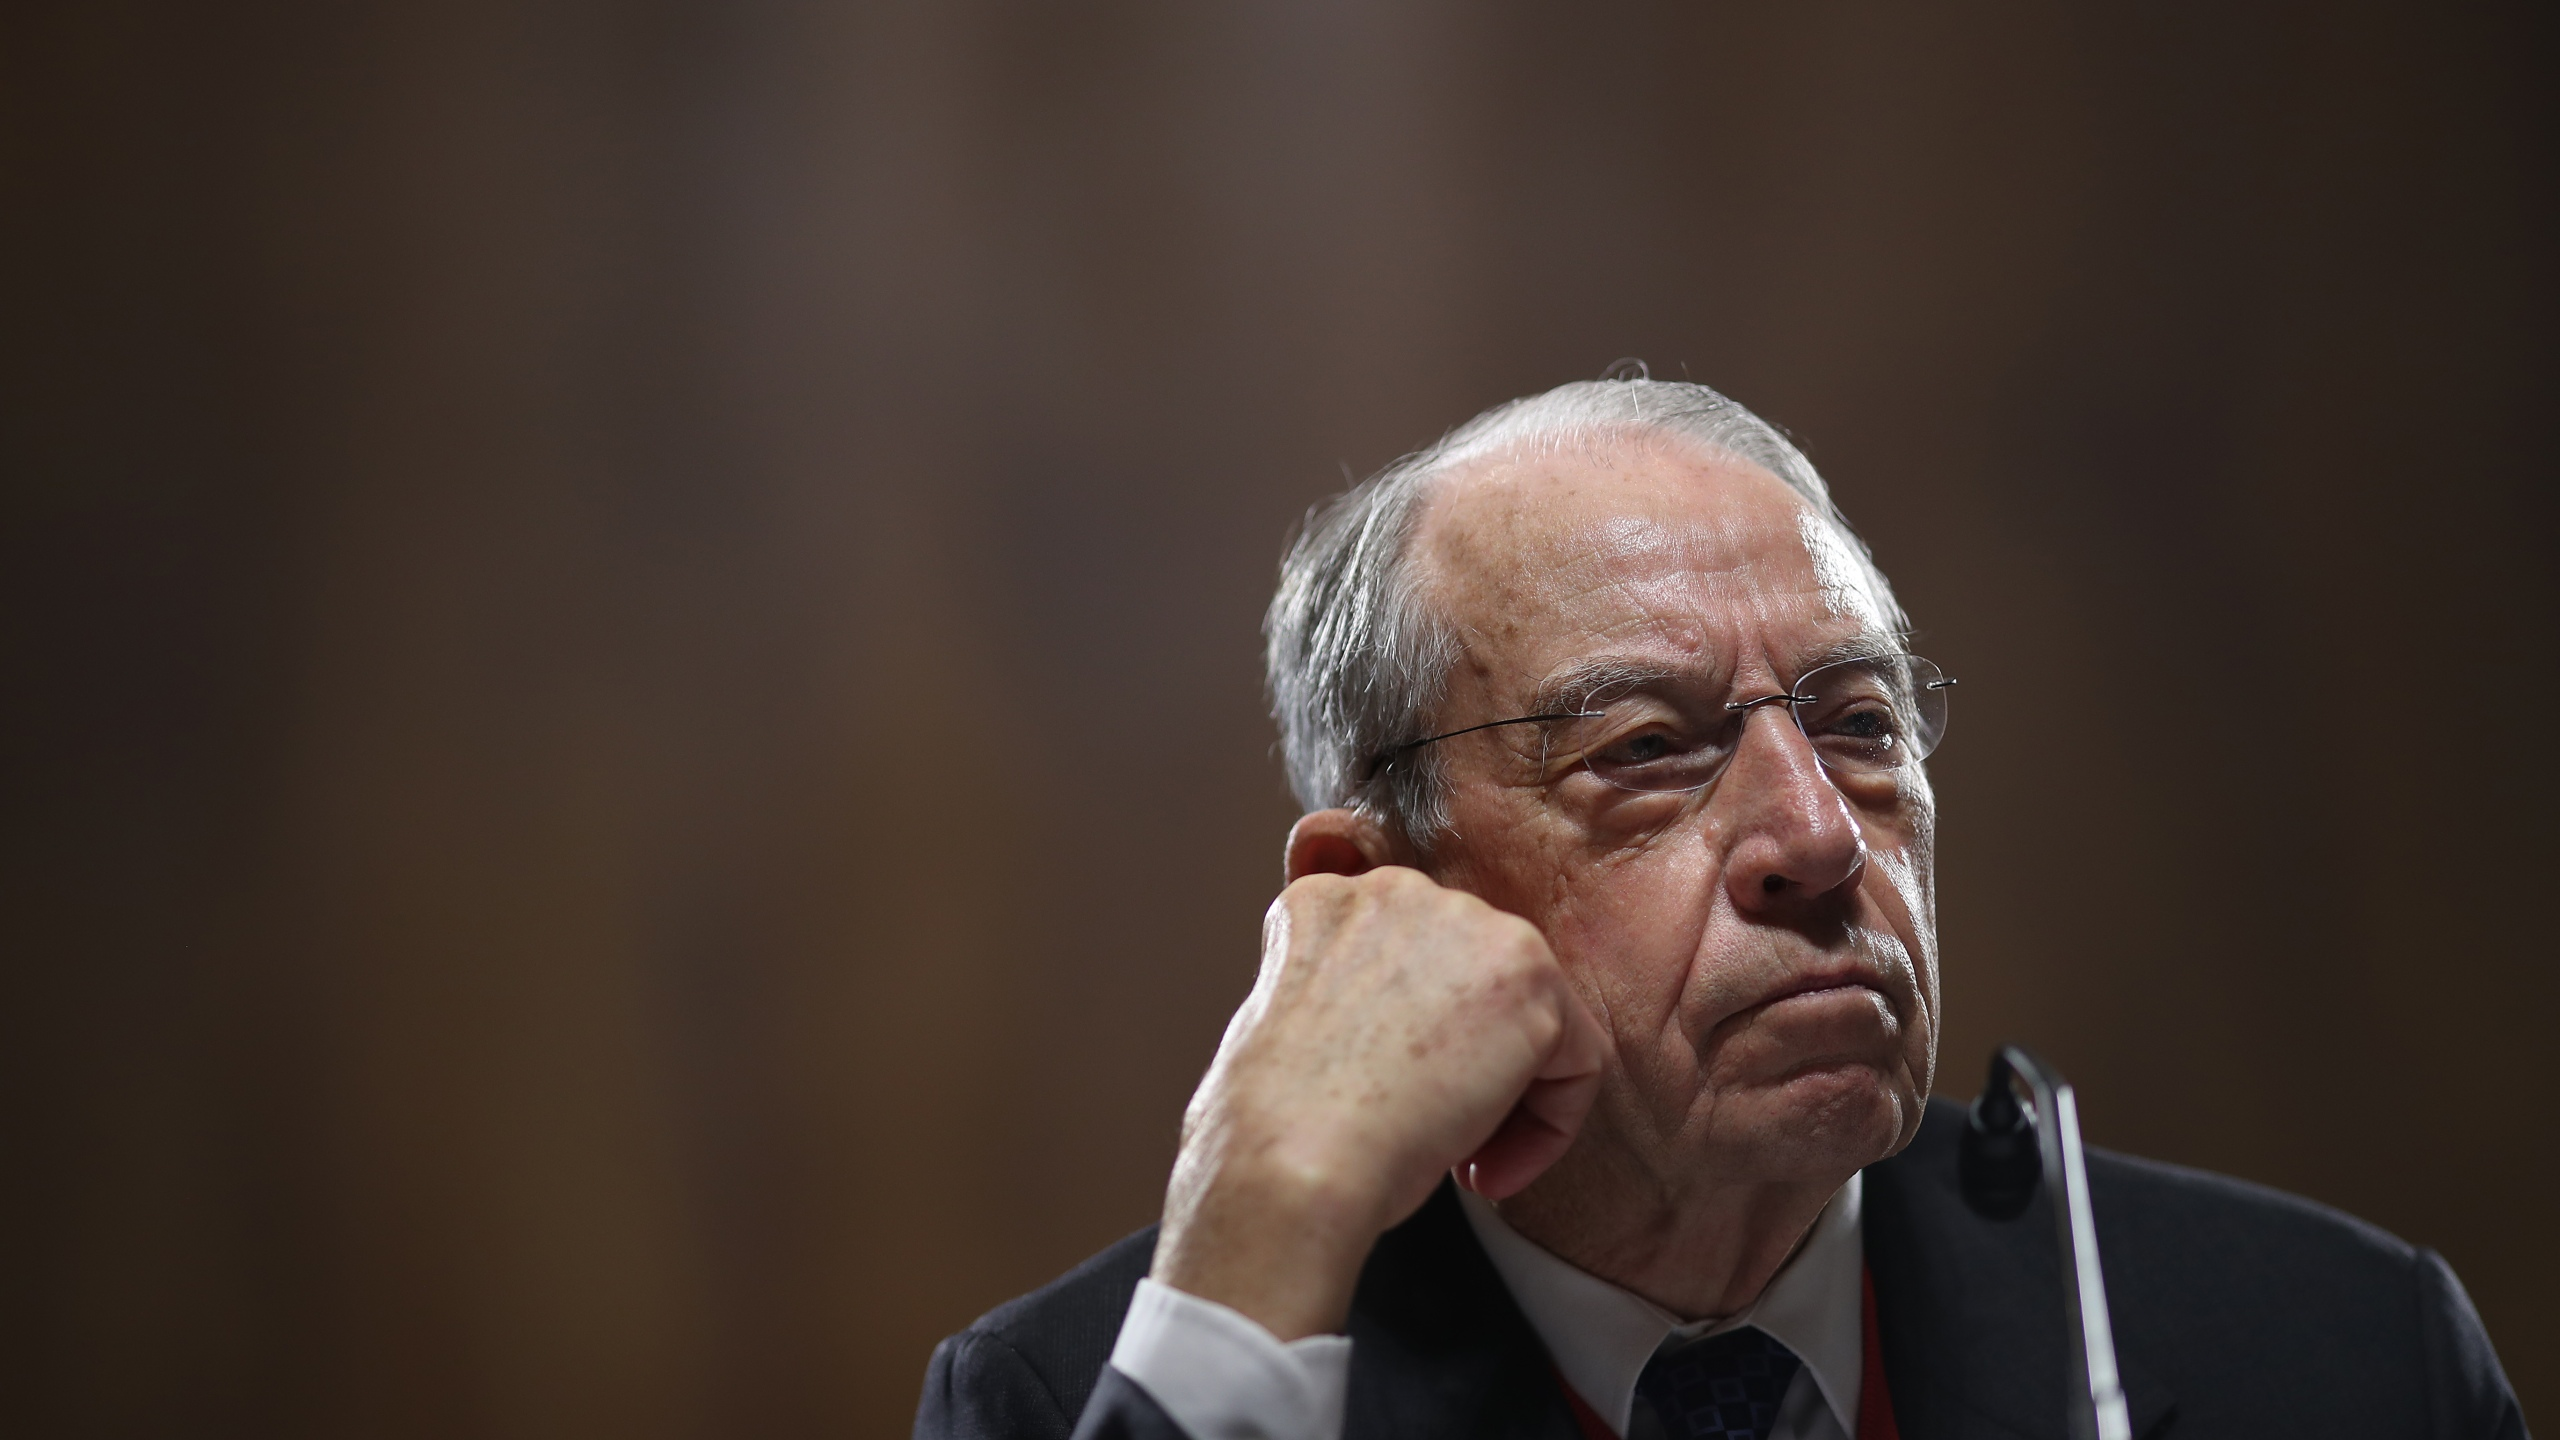 Sen. Chuck Grassley (R-IA) attends a committee hearing on Capitol Hill November 15, 2018 in Washington, DC. (Credit: Win McNamee/Getty Images)